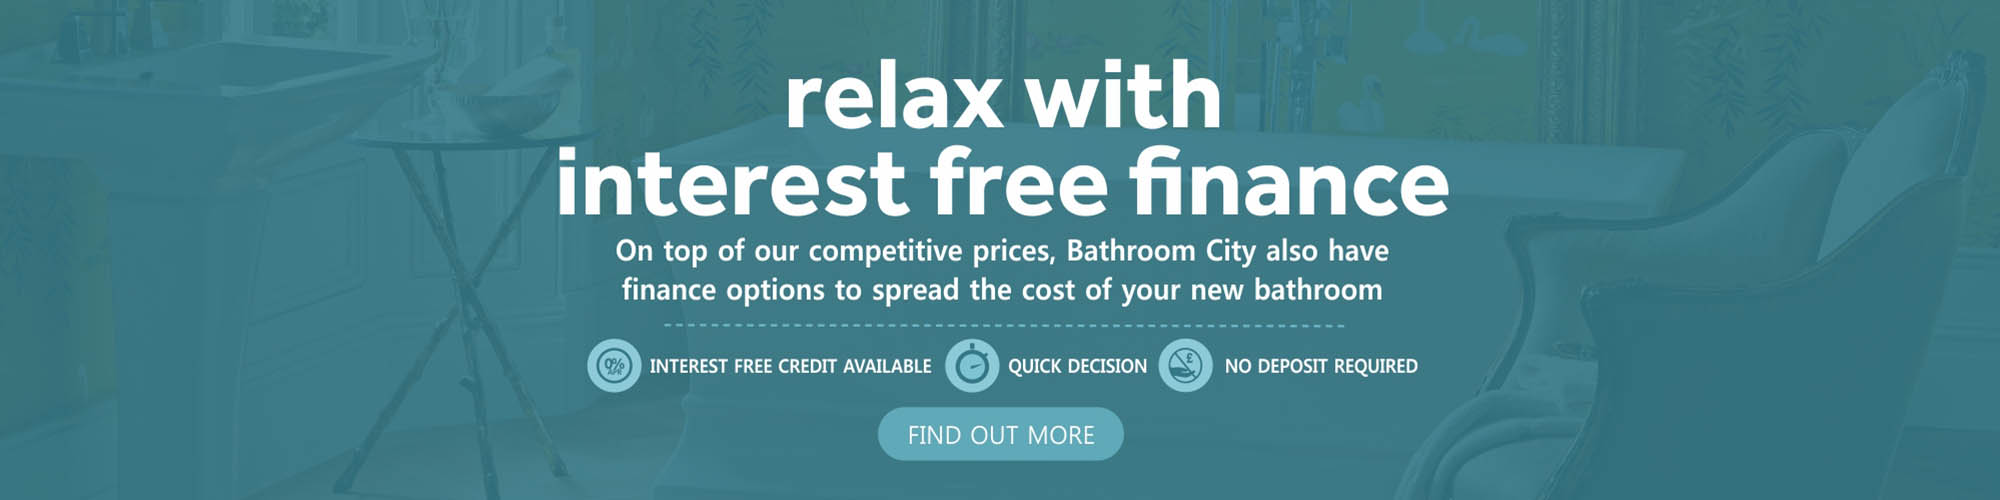 Relax with Interest Free Finance - 0% Interest Free Credit Available - Quick Decision - No Deposit Required